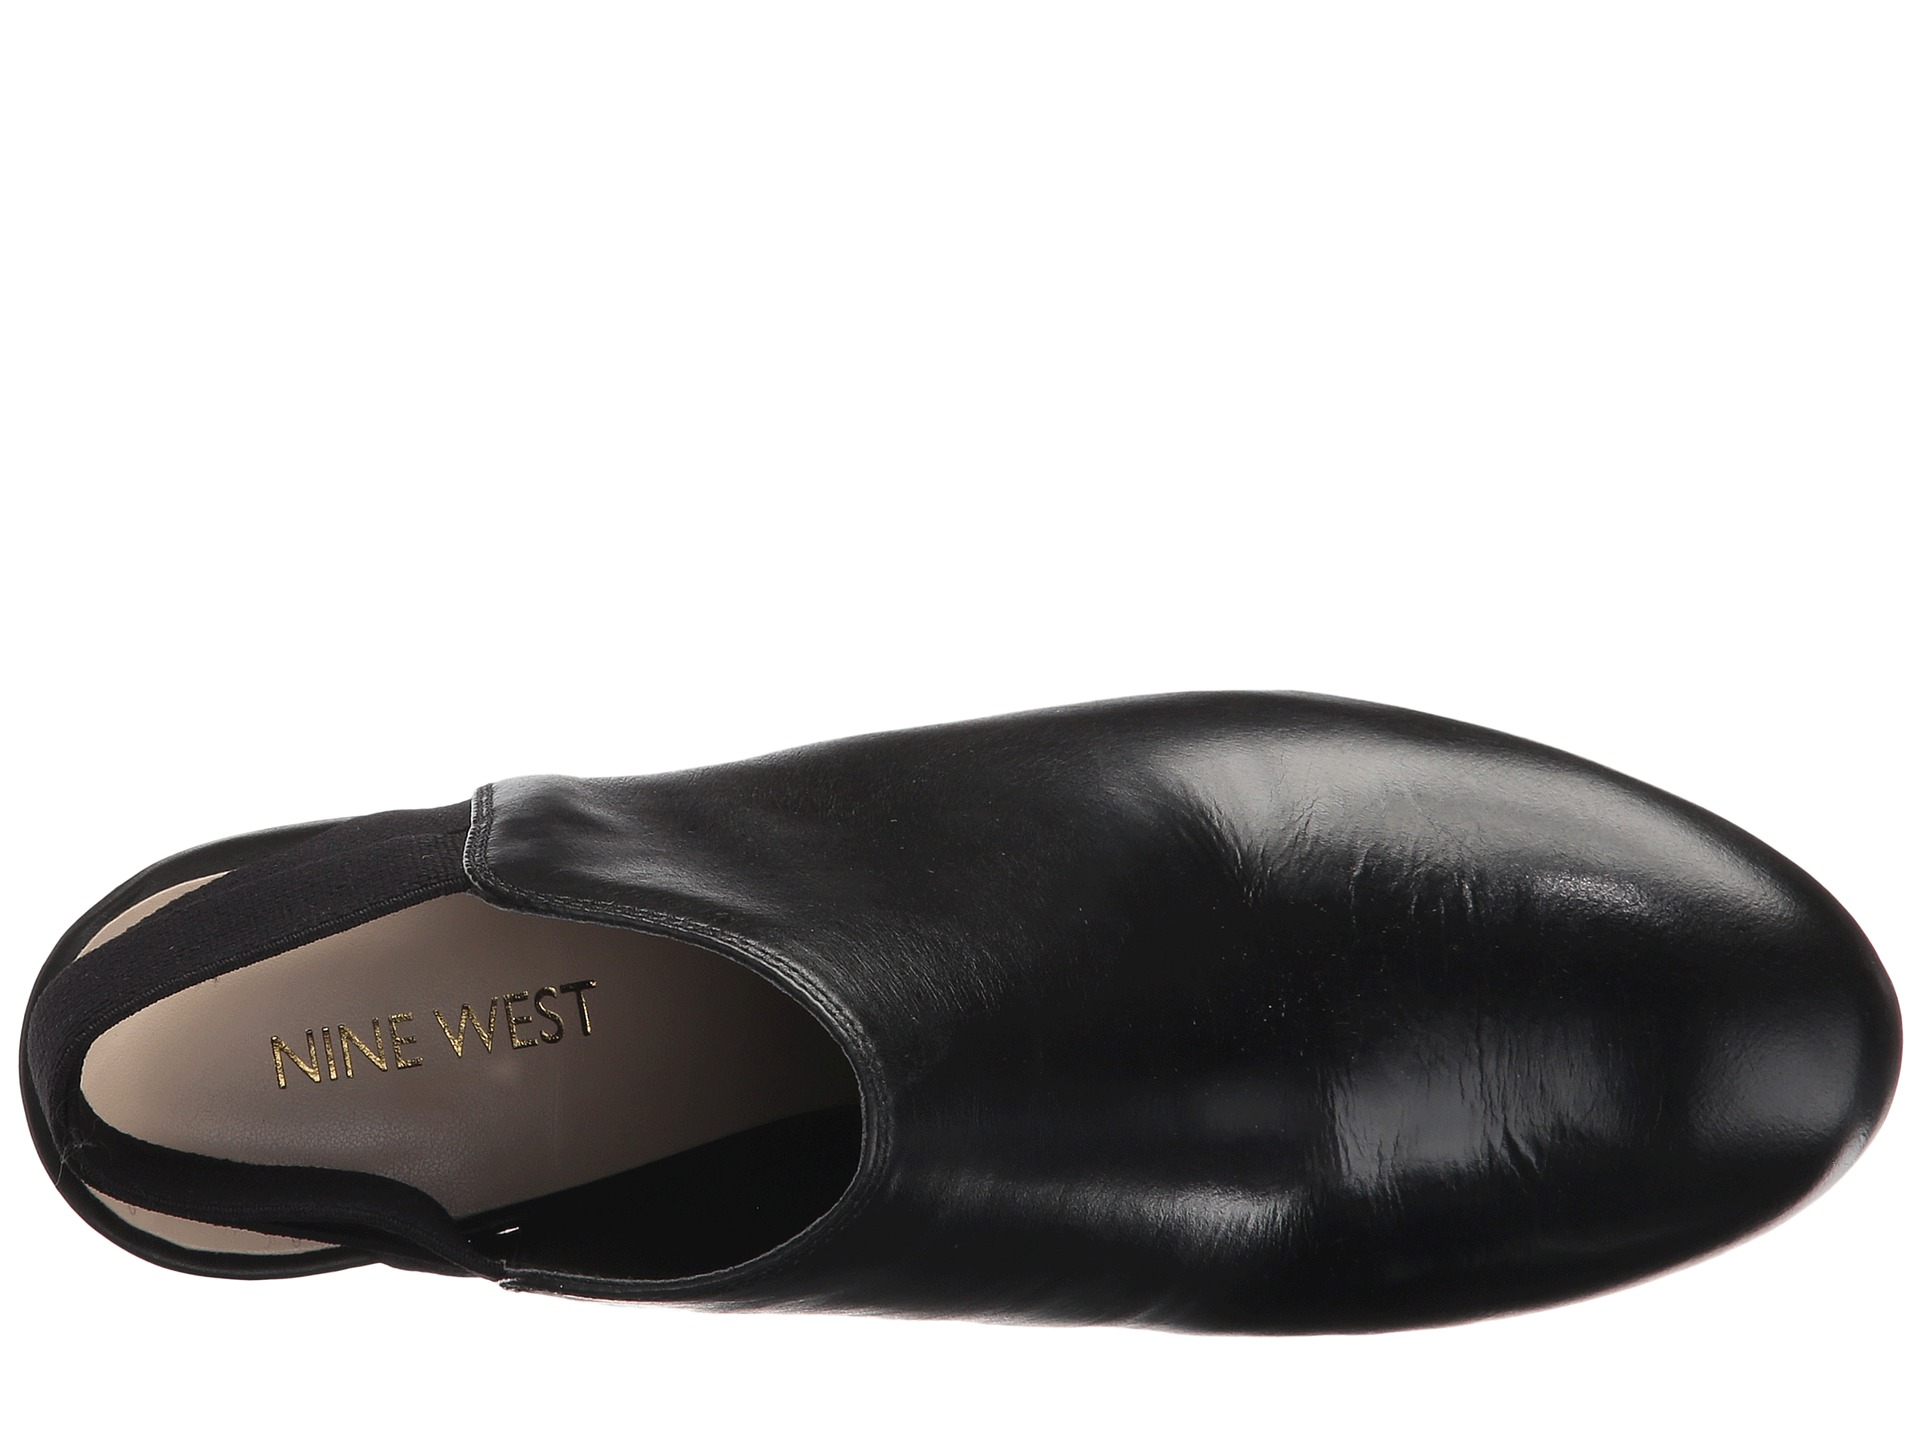 black singles in west burke Burke by nine west at 6pm read nine west burke product reviews black/black leather weight of footwear is based on a single item, not a pair.